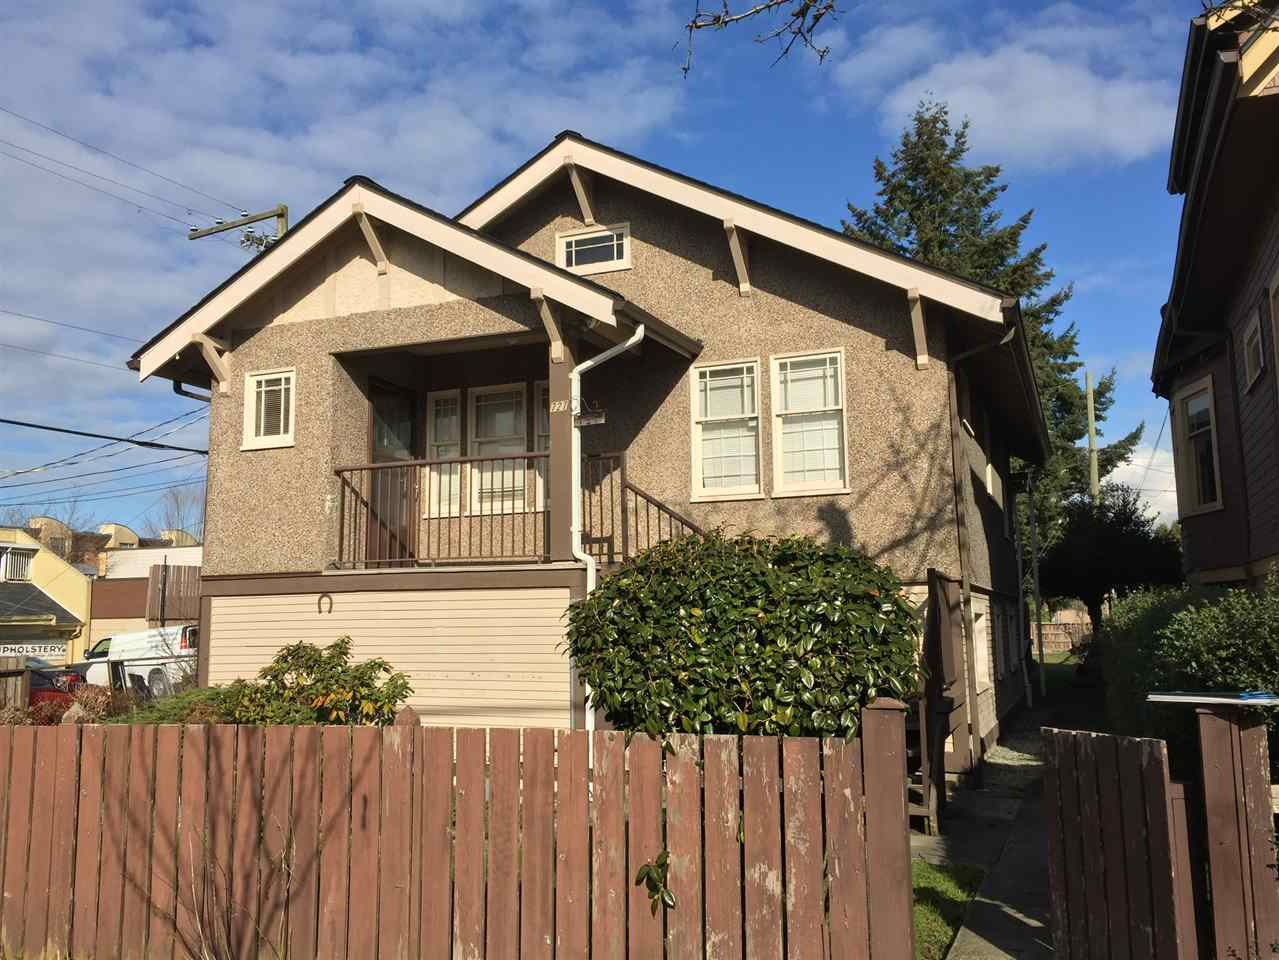 Main Photo: 727 E 26 Avenue in Vancouver: Fraser VE House for sale (Vancouver East)  : MLS® # R2143519